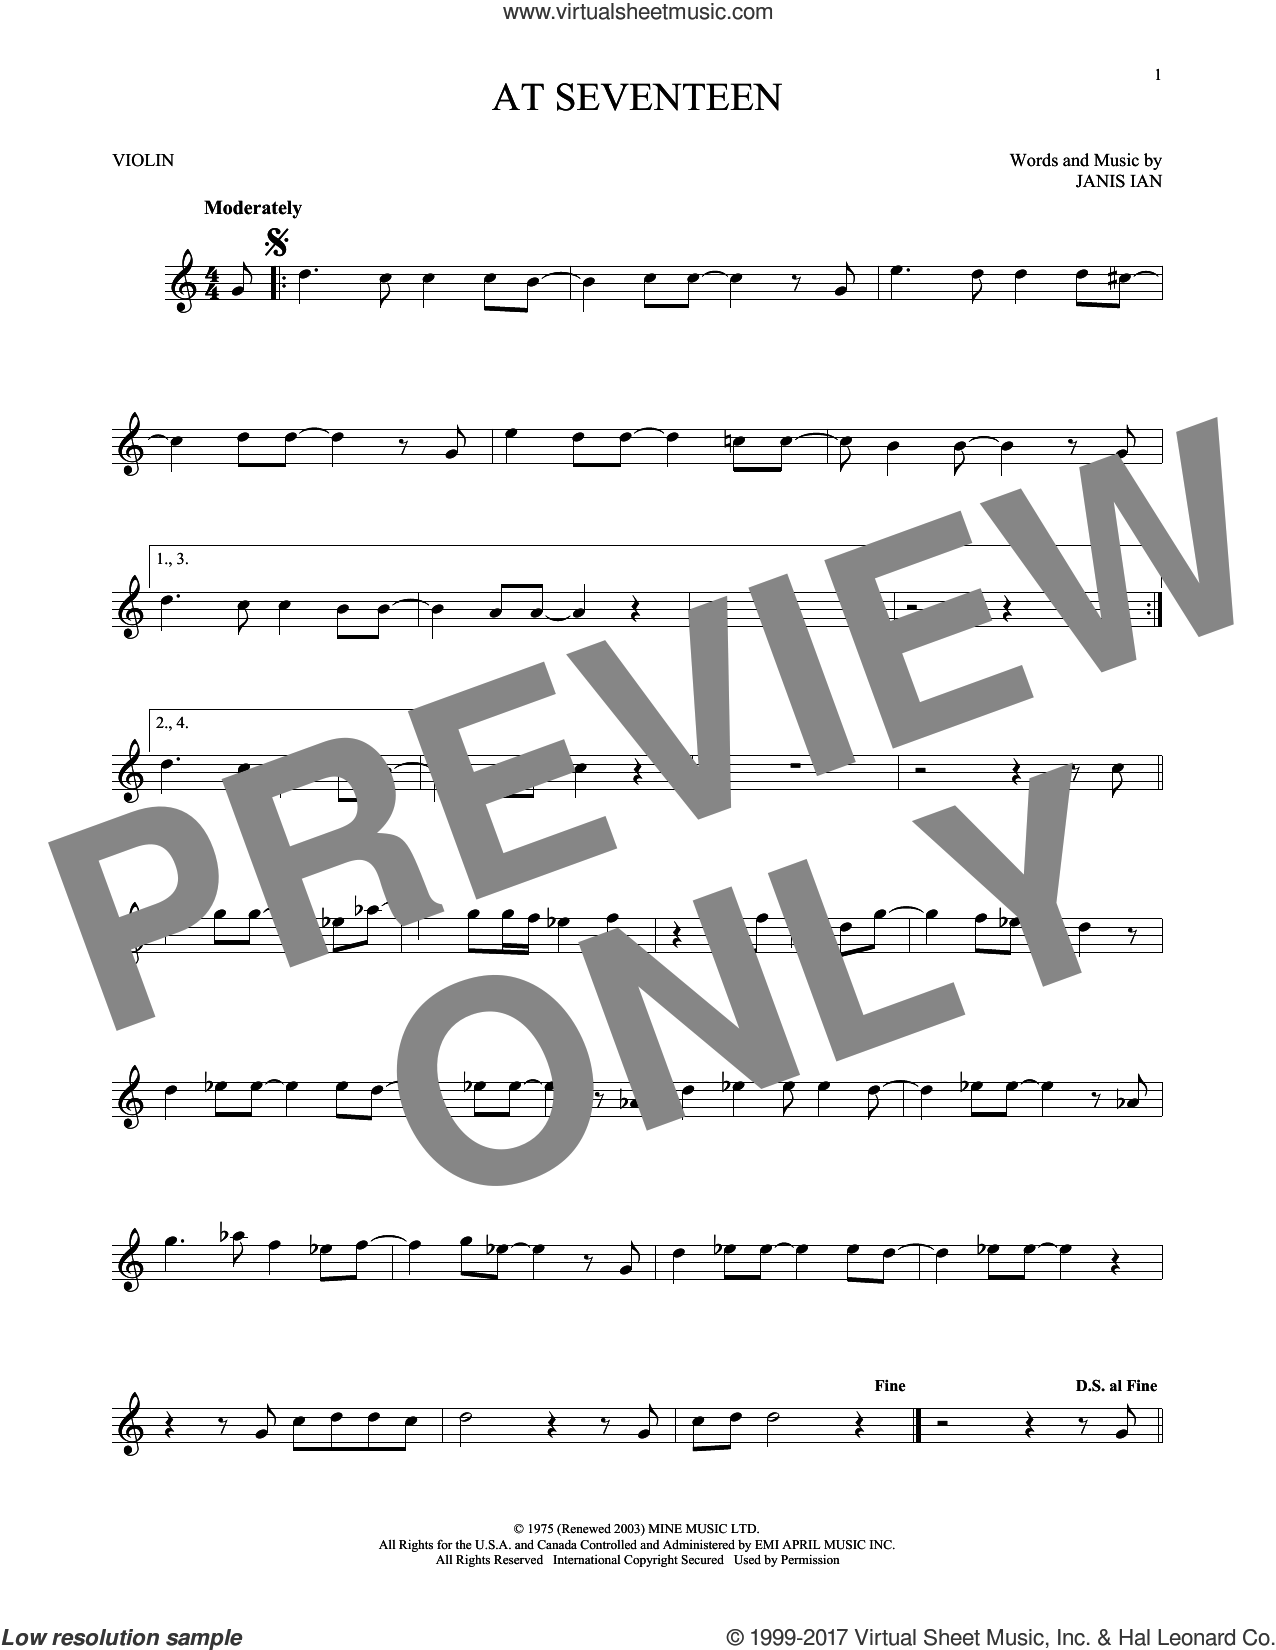 At Seventeen sheet music for violin solo by Janis Ian, intermediate skill level